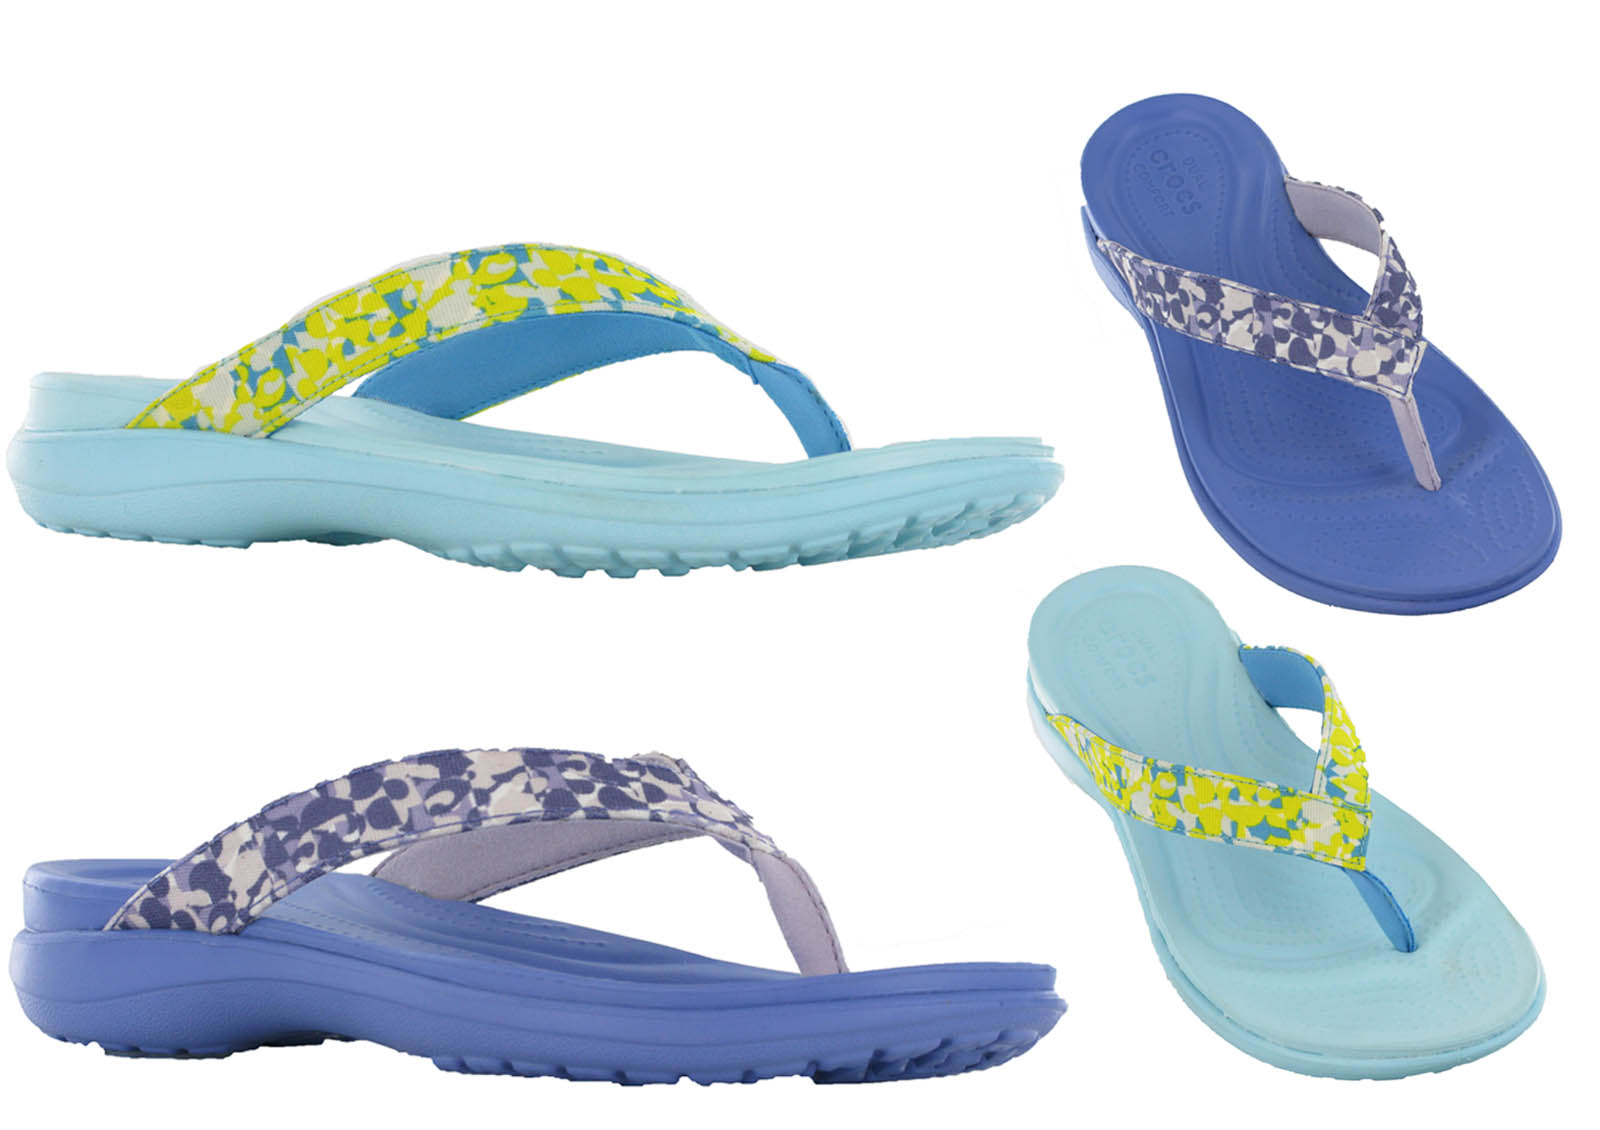 crocs capri v deco flip summer comfort flip flop toe post. Black Bedroom Furniture Sets. Home Design Ideas